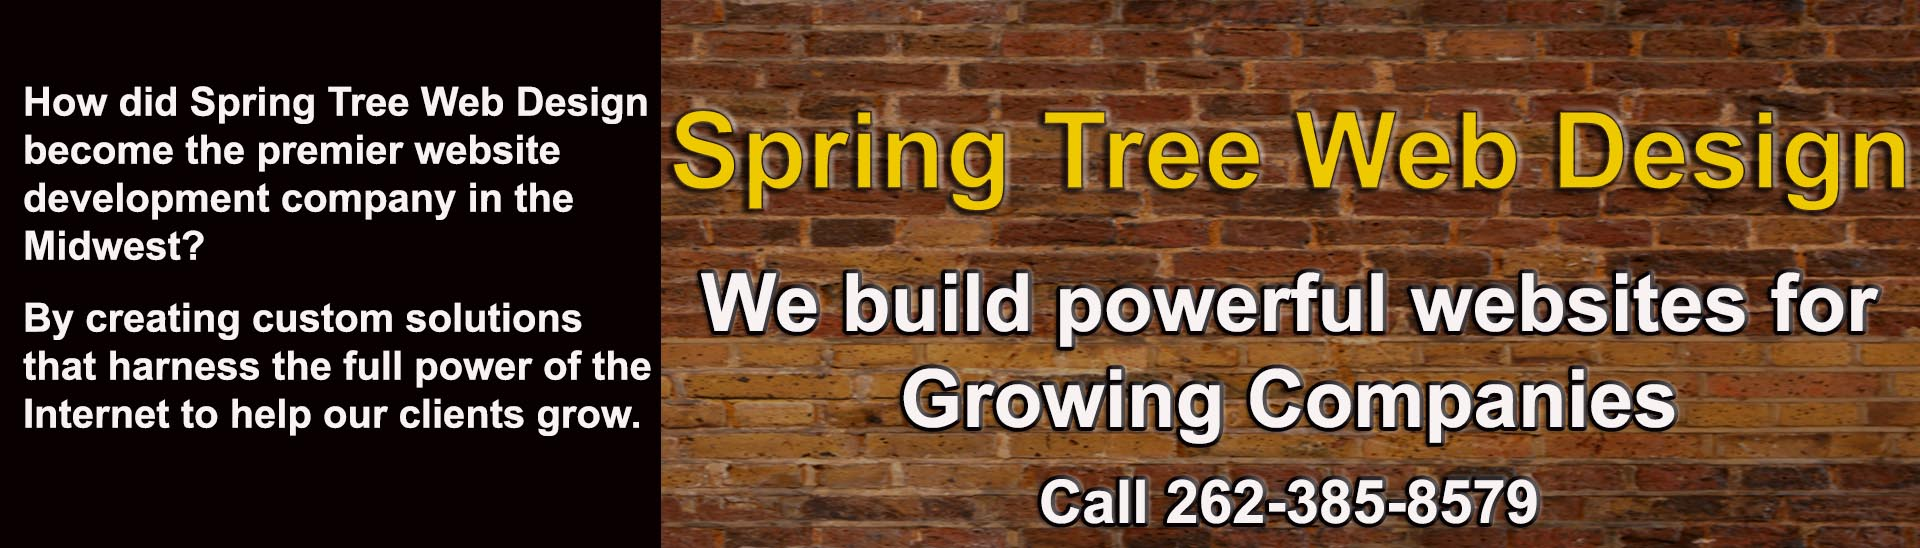 Spring Tree Web Design